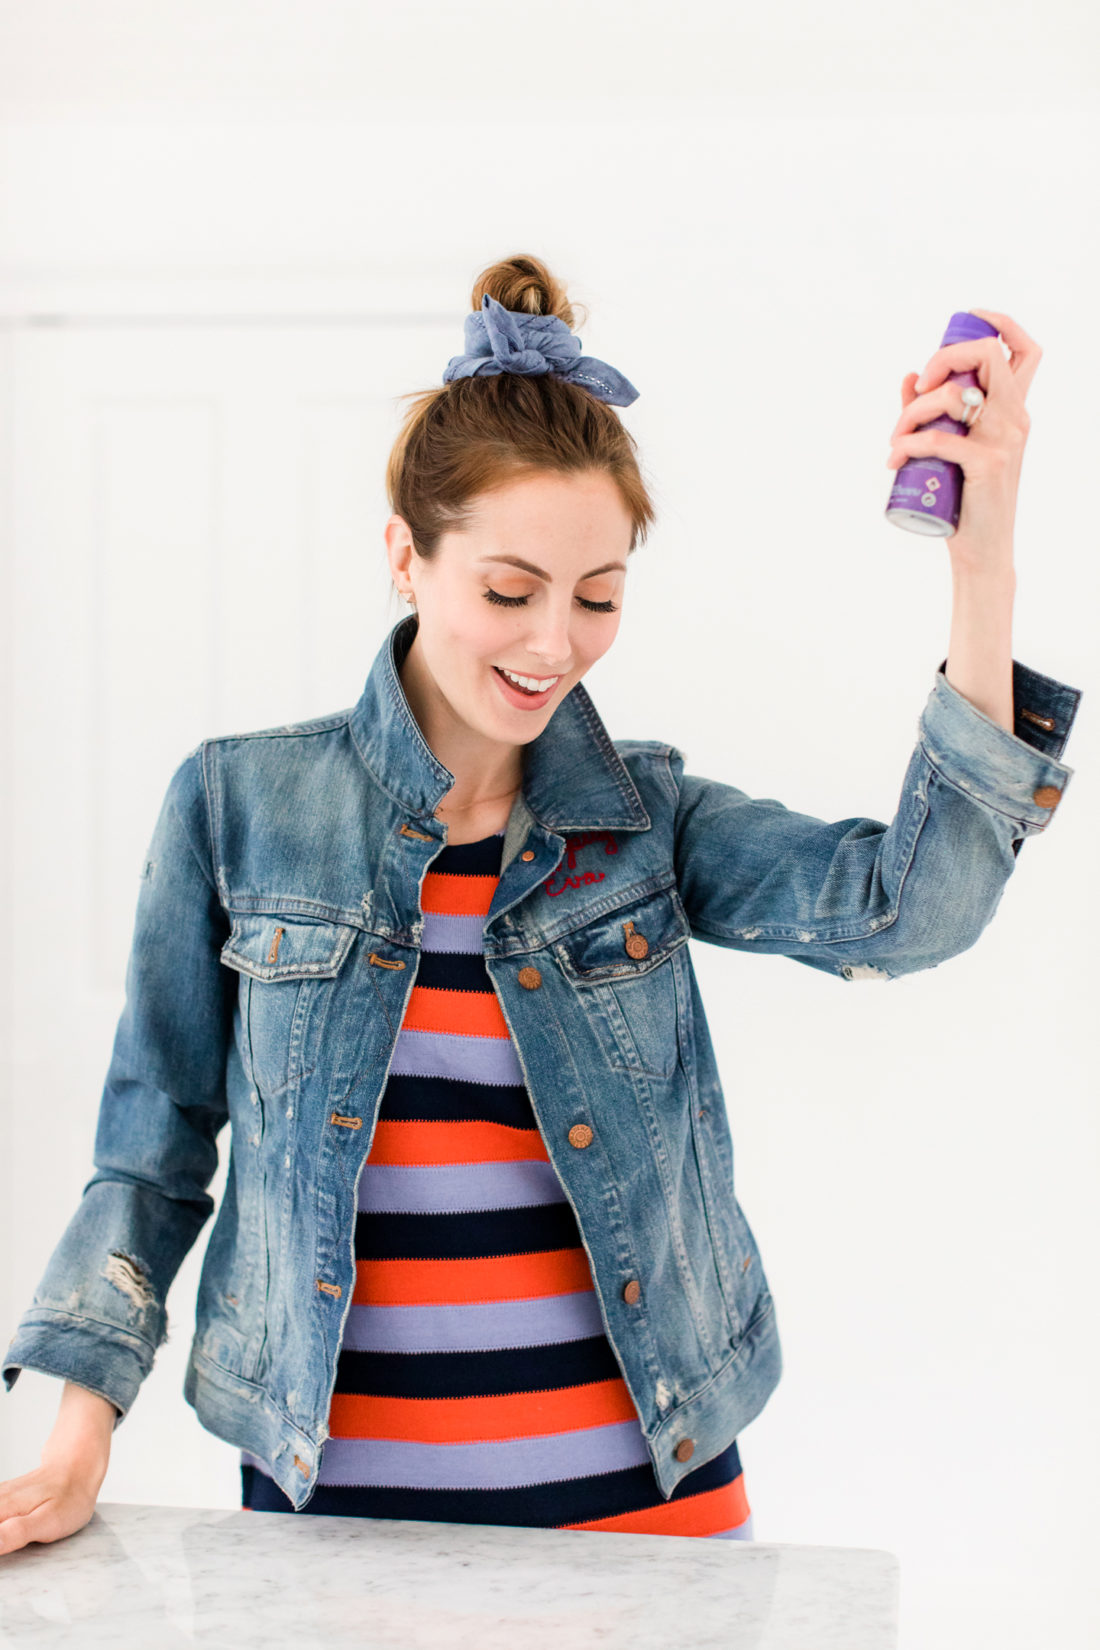 Eva Amurri Martino sprays her kerchief bun hairstyle with felxible hold hairspray